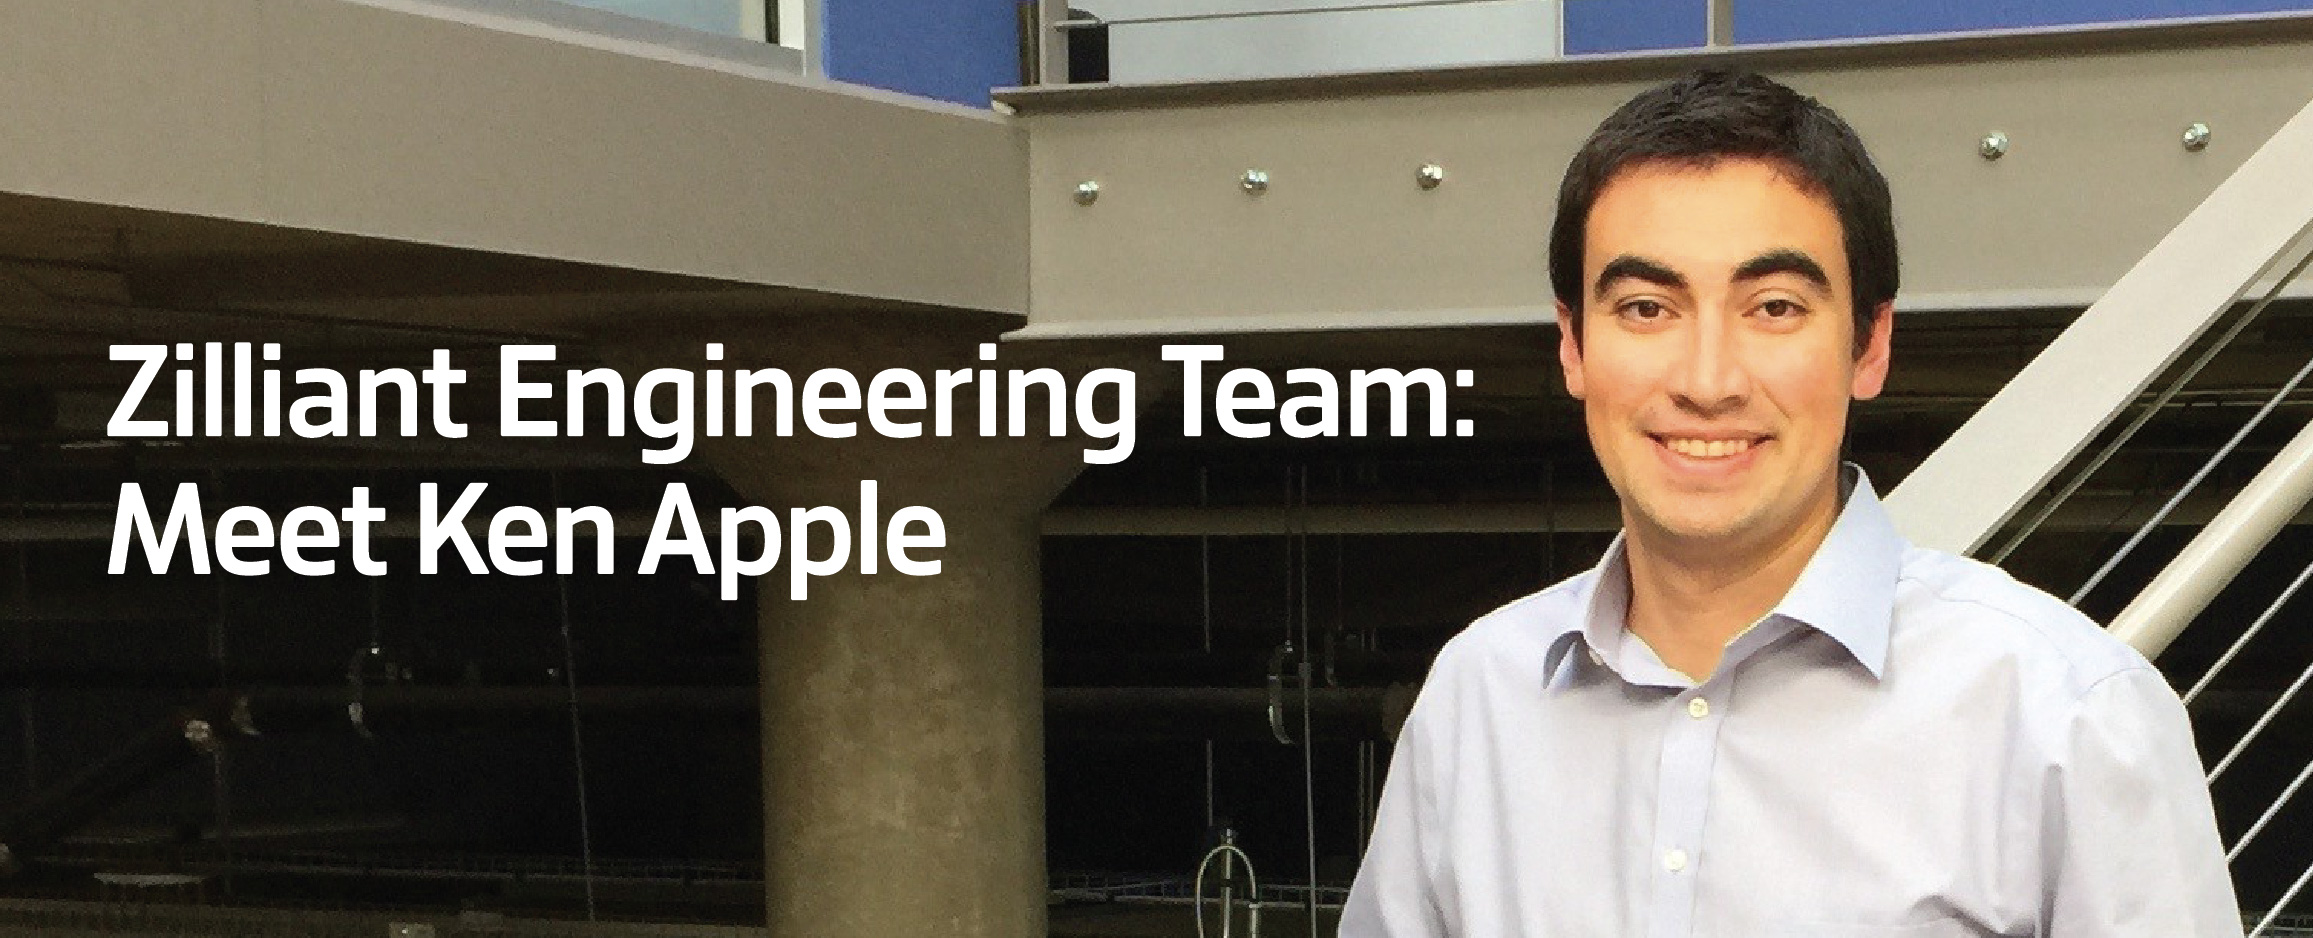 Picture of Zilliant Engineering Team member Ken Apple.